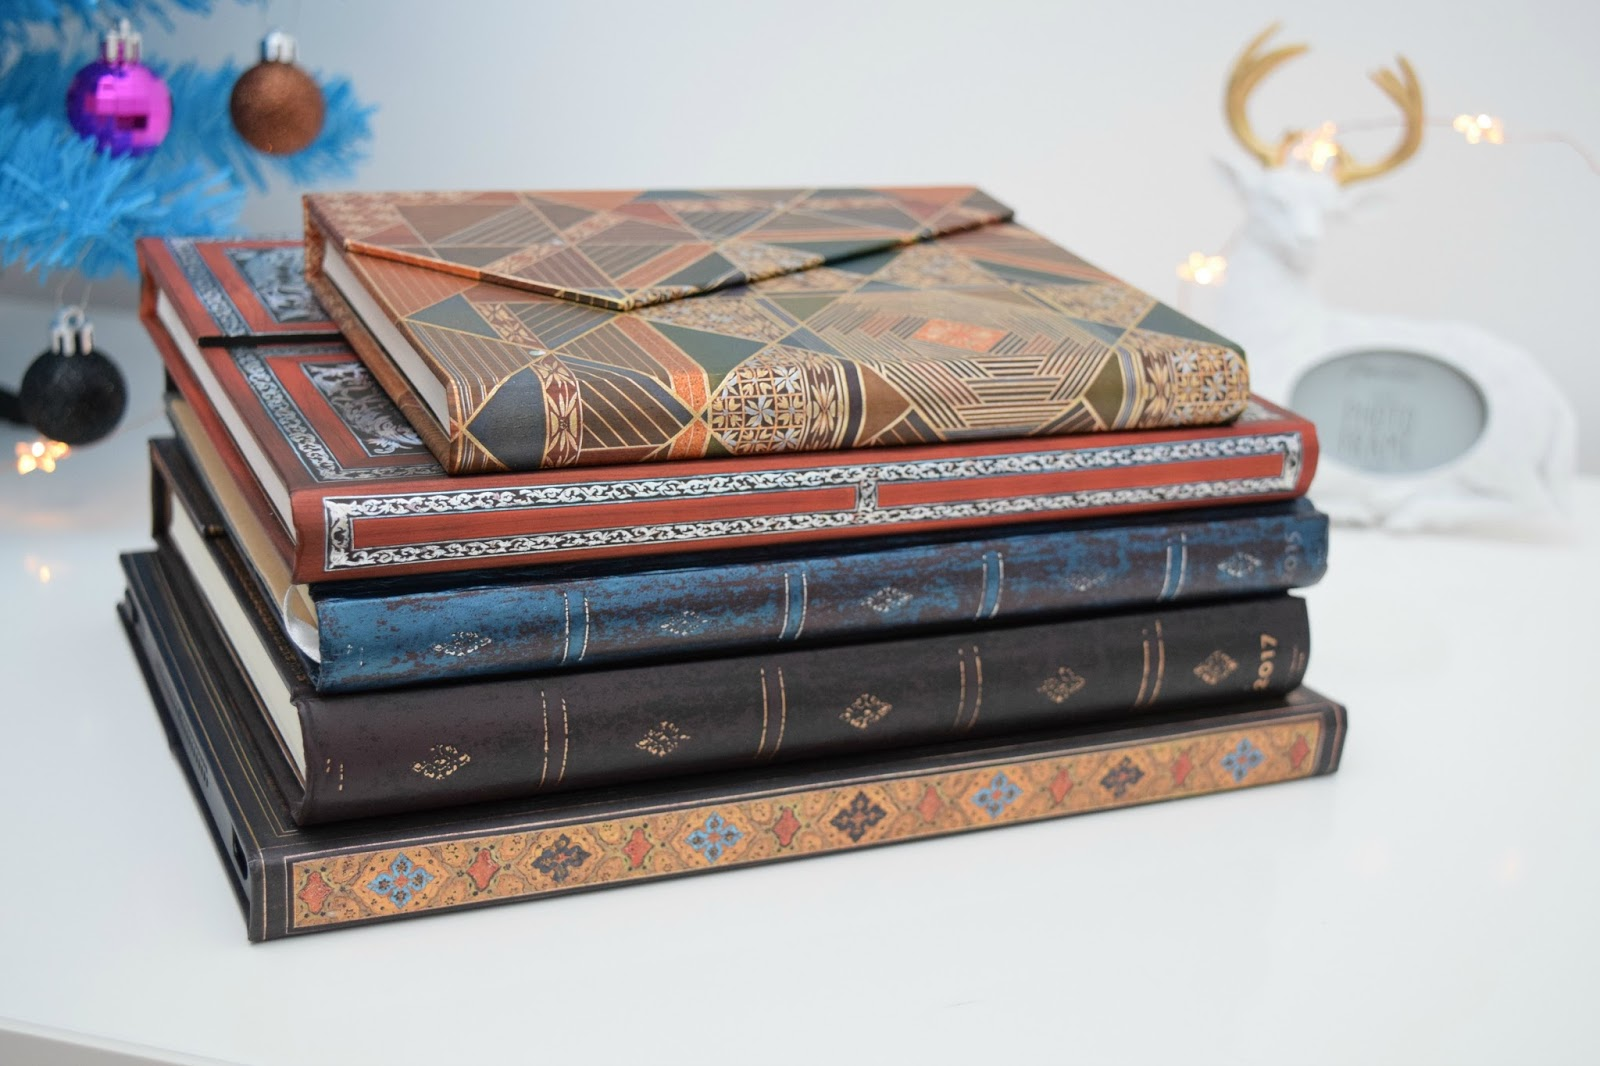 paperblanks collection including the exchange shiraz tablet jacket